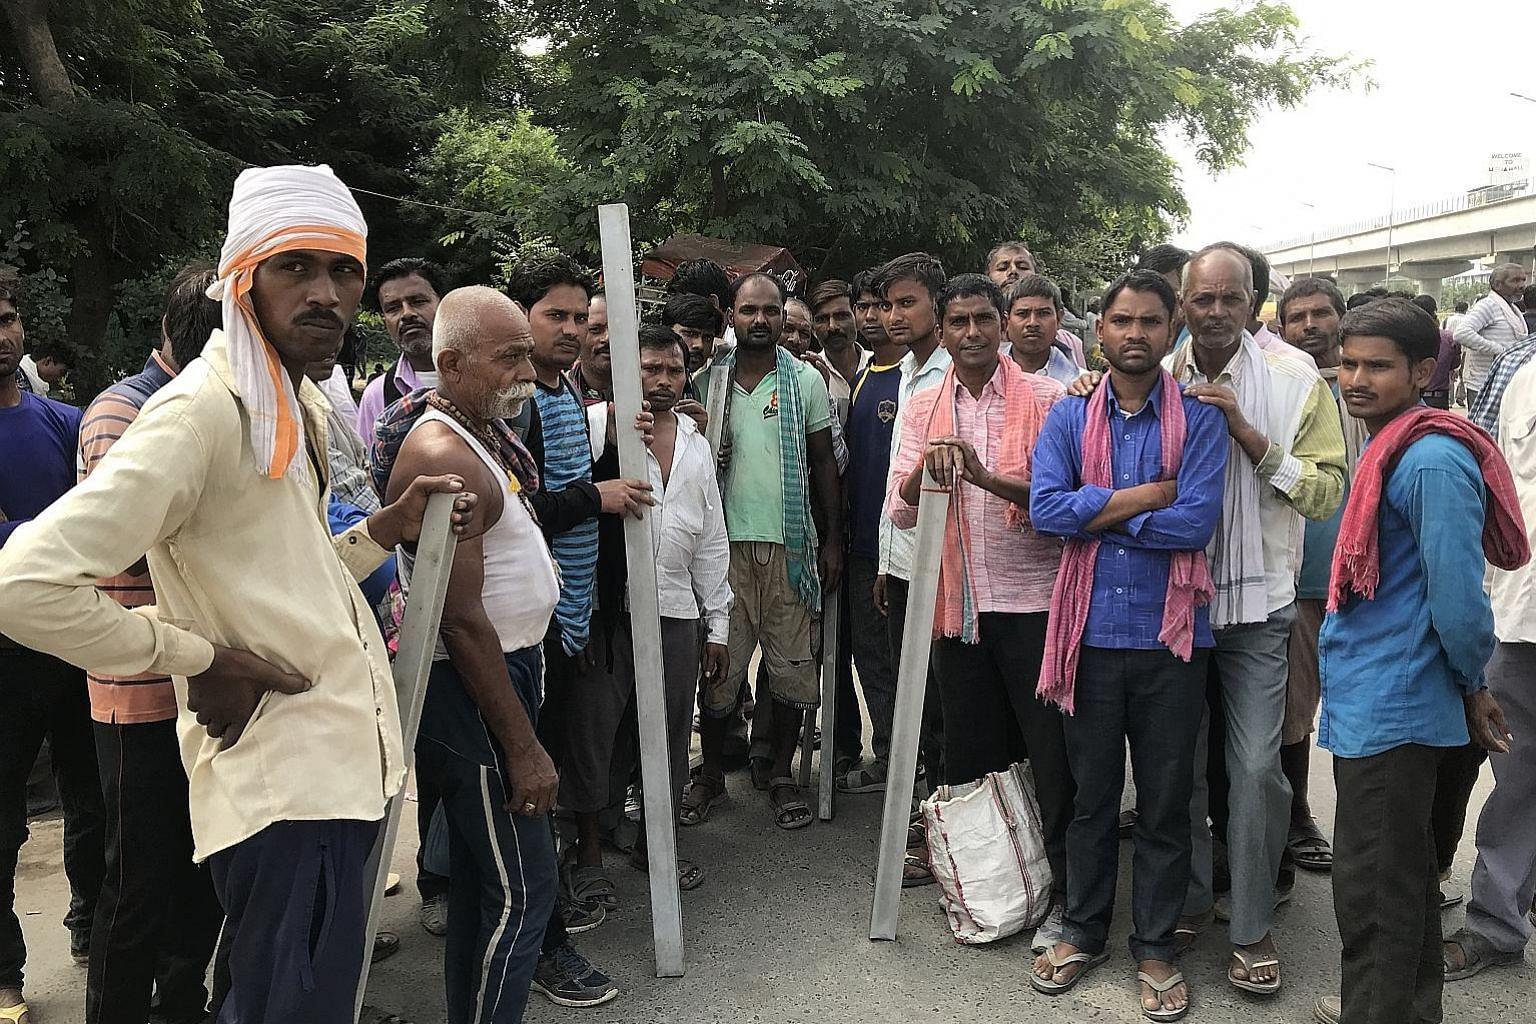 Daily-wage labourers and construction workers on the outskirts of New Delhi jostling for jobs earlier last month with a recruiter (in red). Confidence in the Indian economy is giving way to uncertainty as growth in the labour-intensive manufacturing